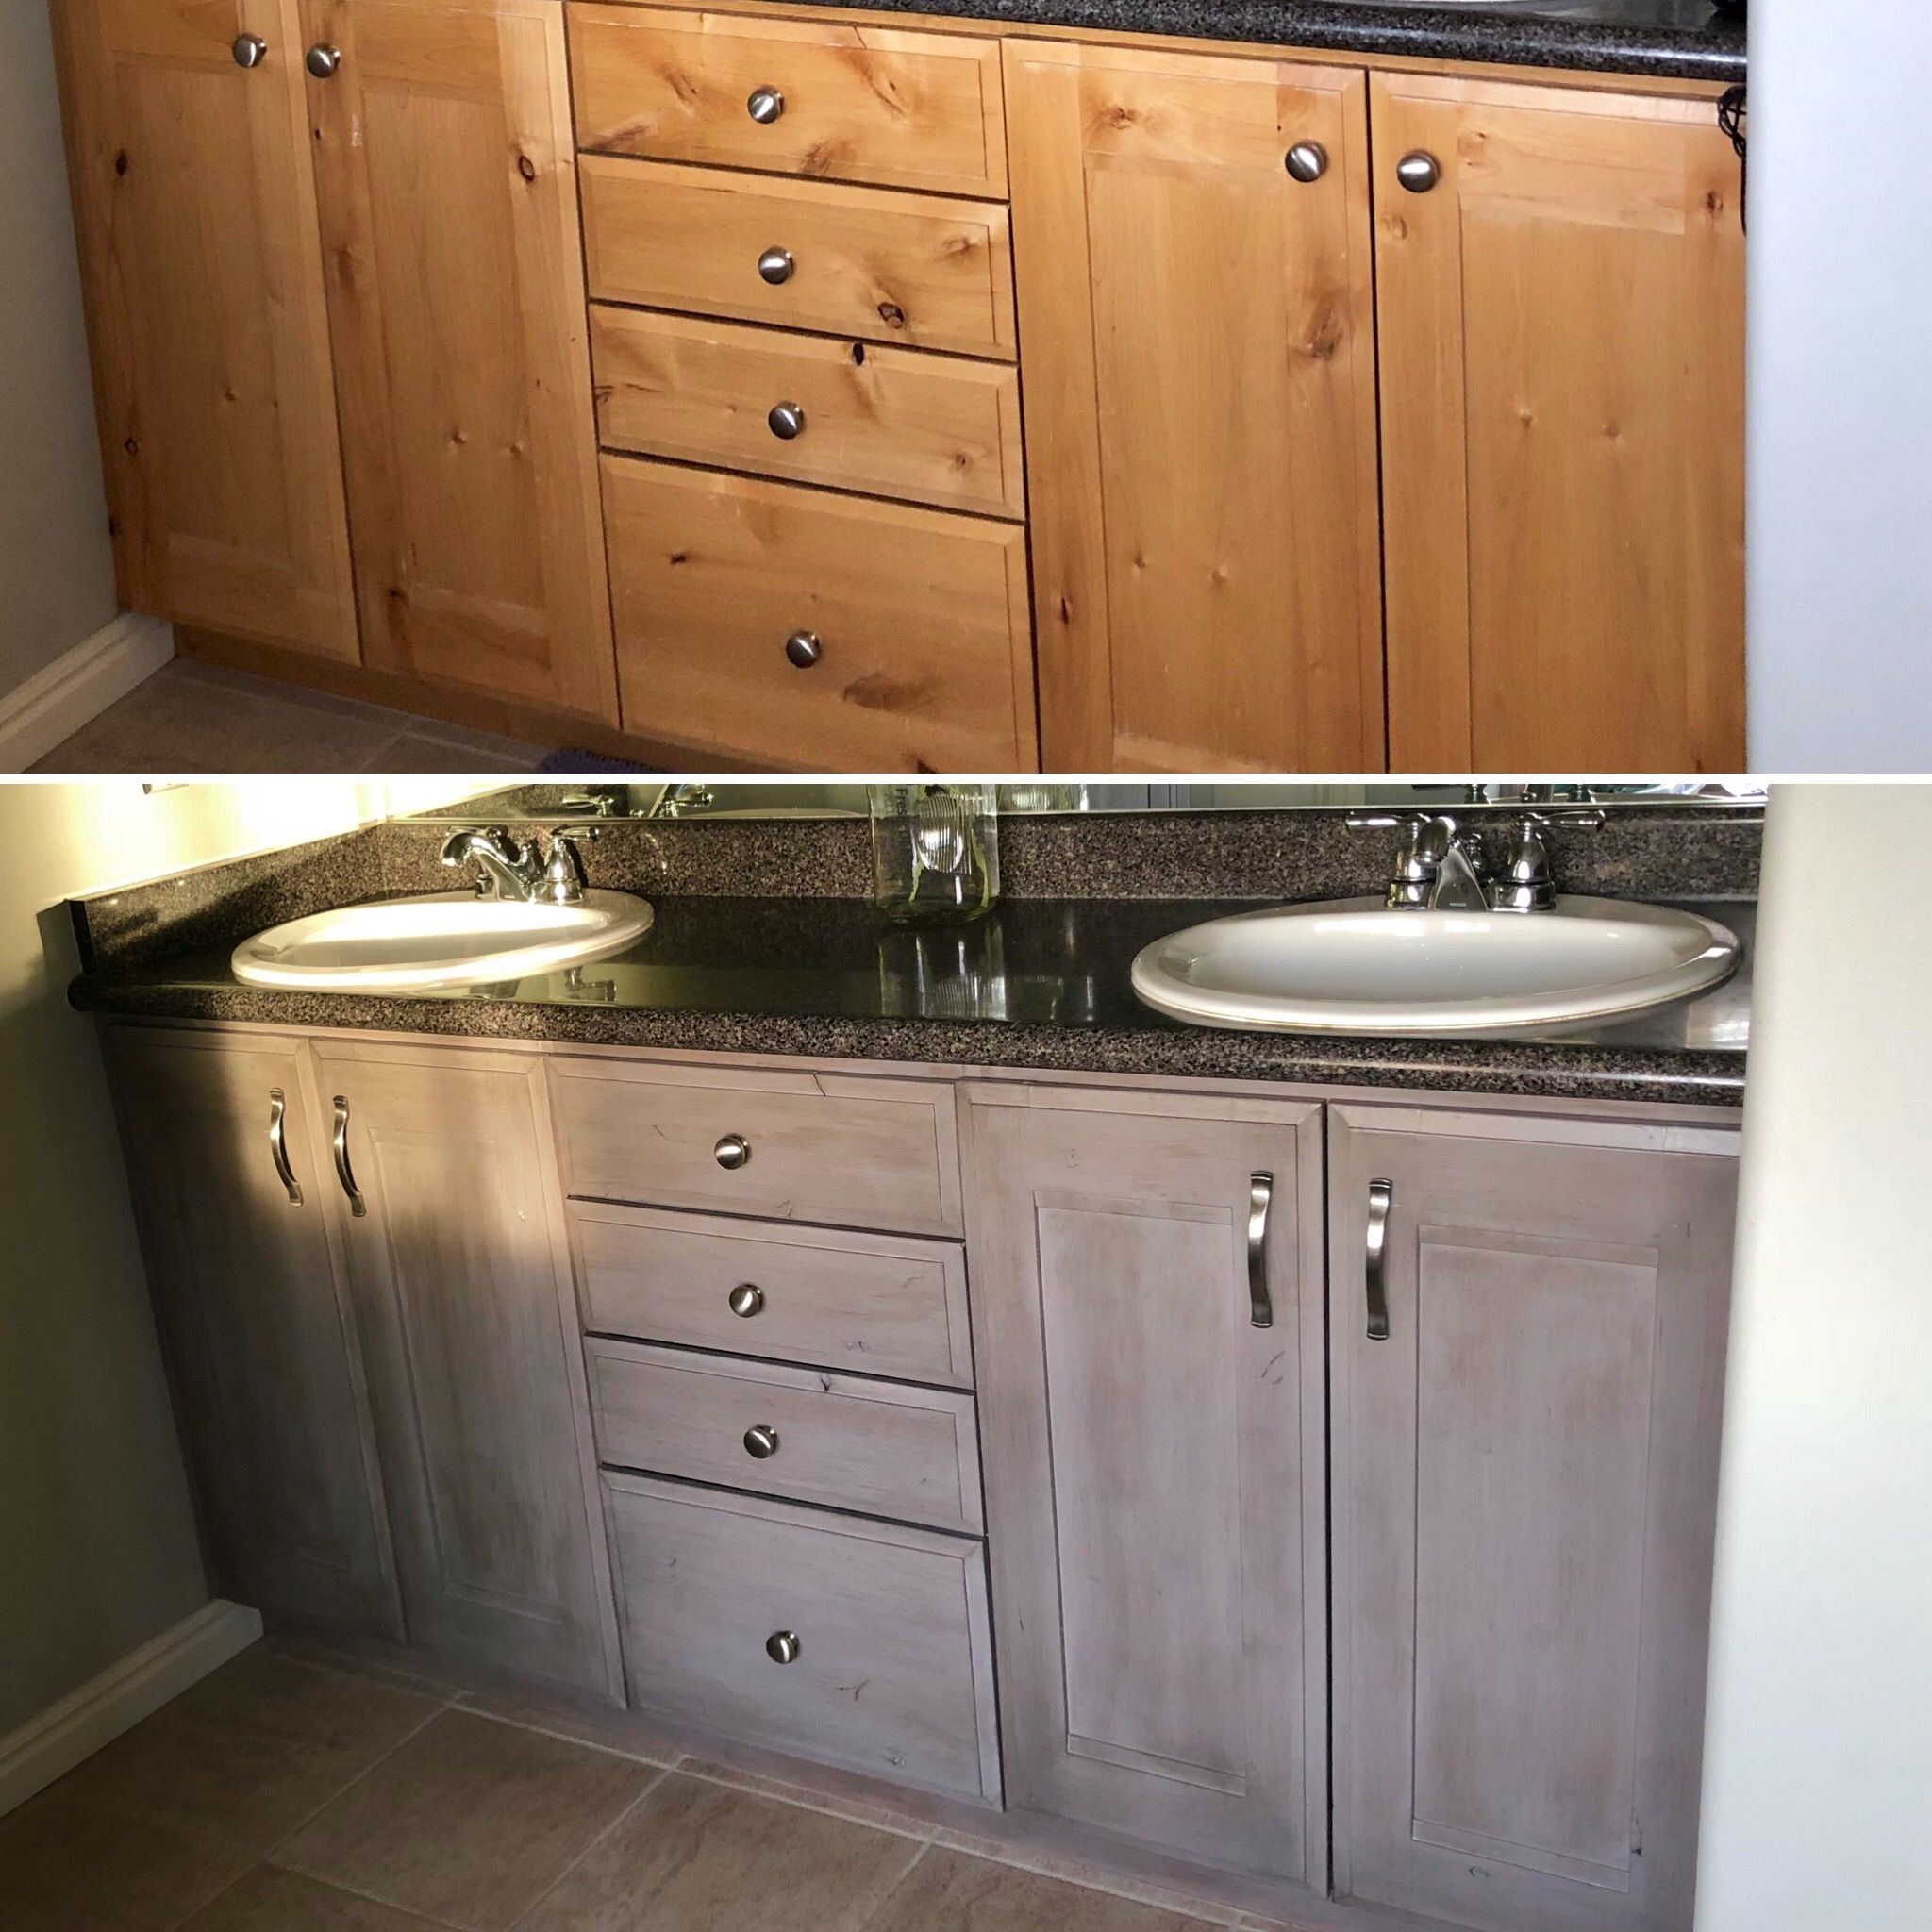 Knotty Alder Before And After I Used Oldmasters Gel Stain Brushing On A Stained Kitchen Cabinets Kitchen Cabinets Before And After Gel Stain Kitchen Cabinets